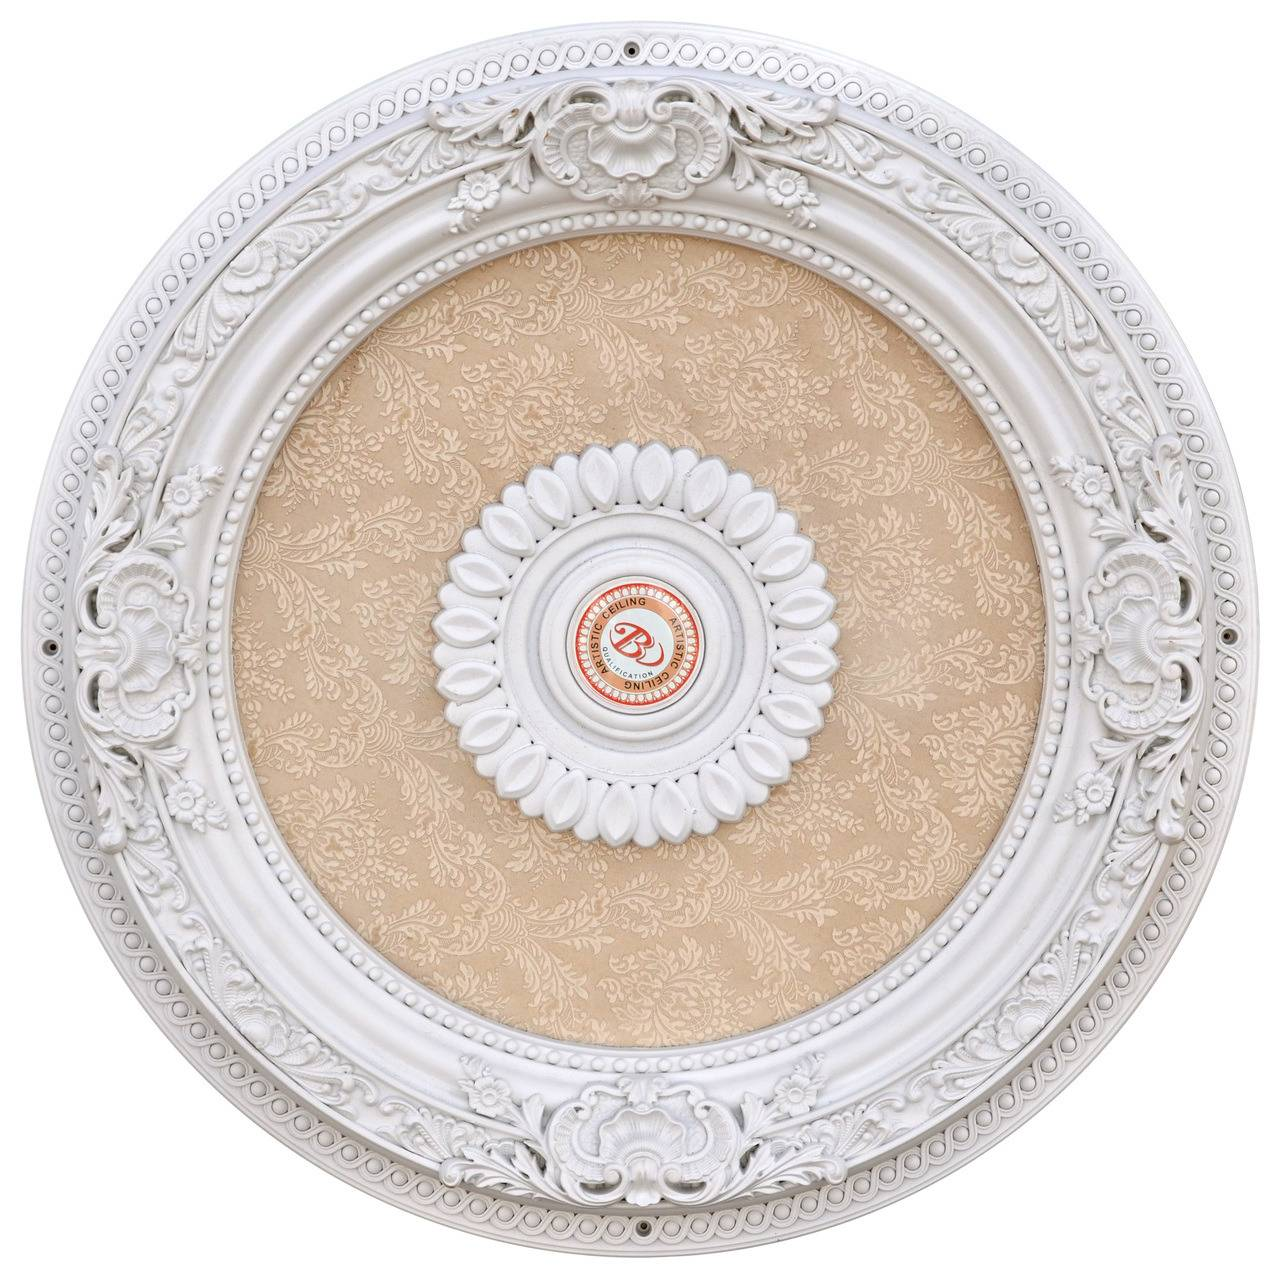 Banruo Hot Sale Artistic Polystyrene Decorative Ceiling Medallions For Interior Decor